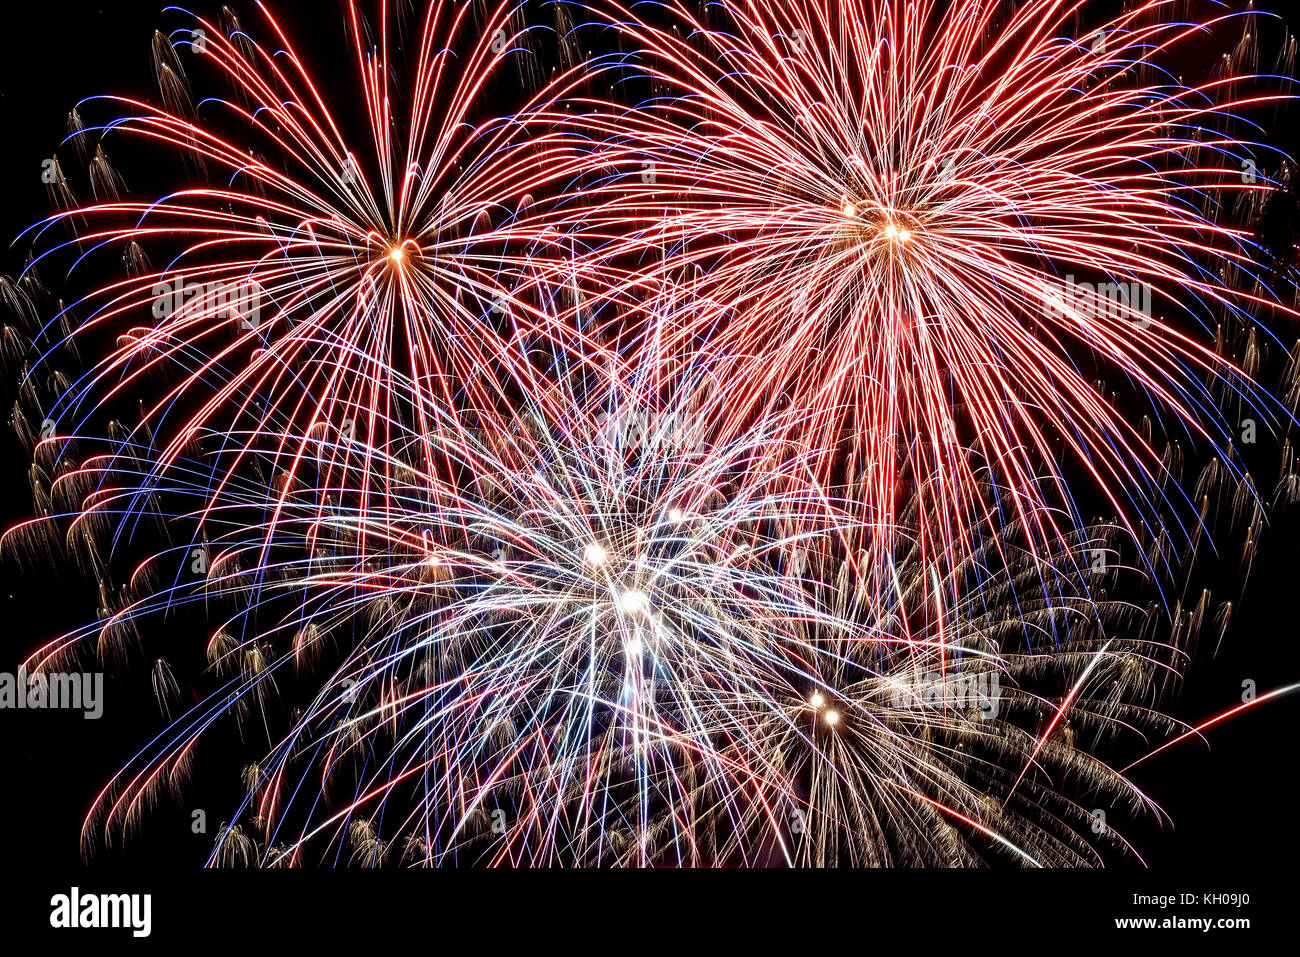 Bright festive background with beautiful colored fireworks, salute on the background of the black sky - Stock Image